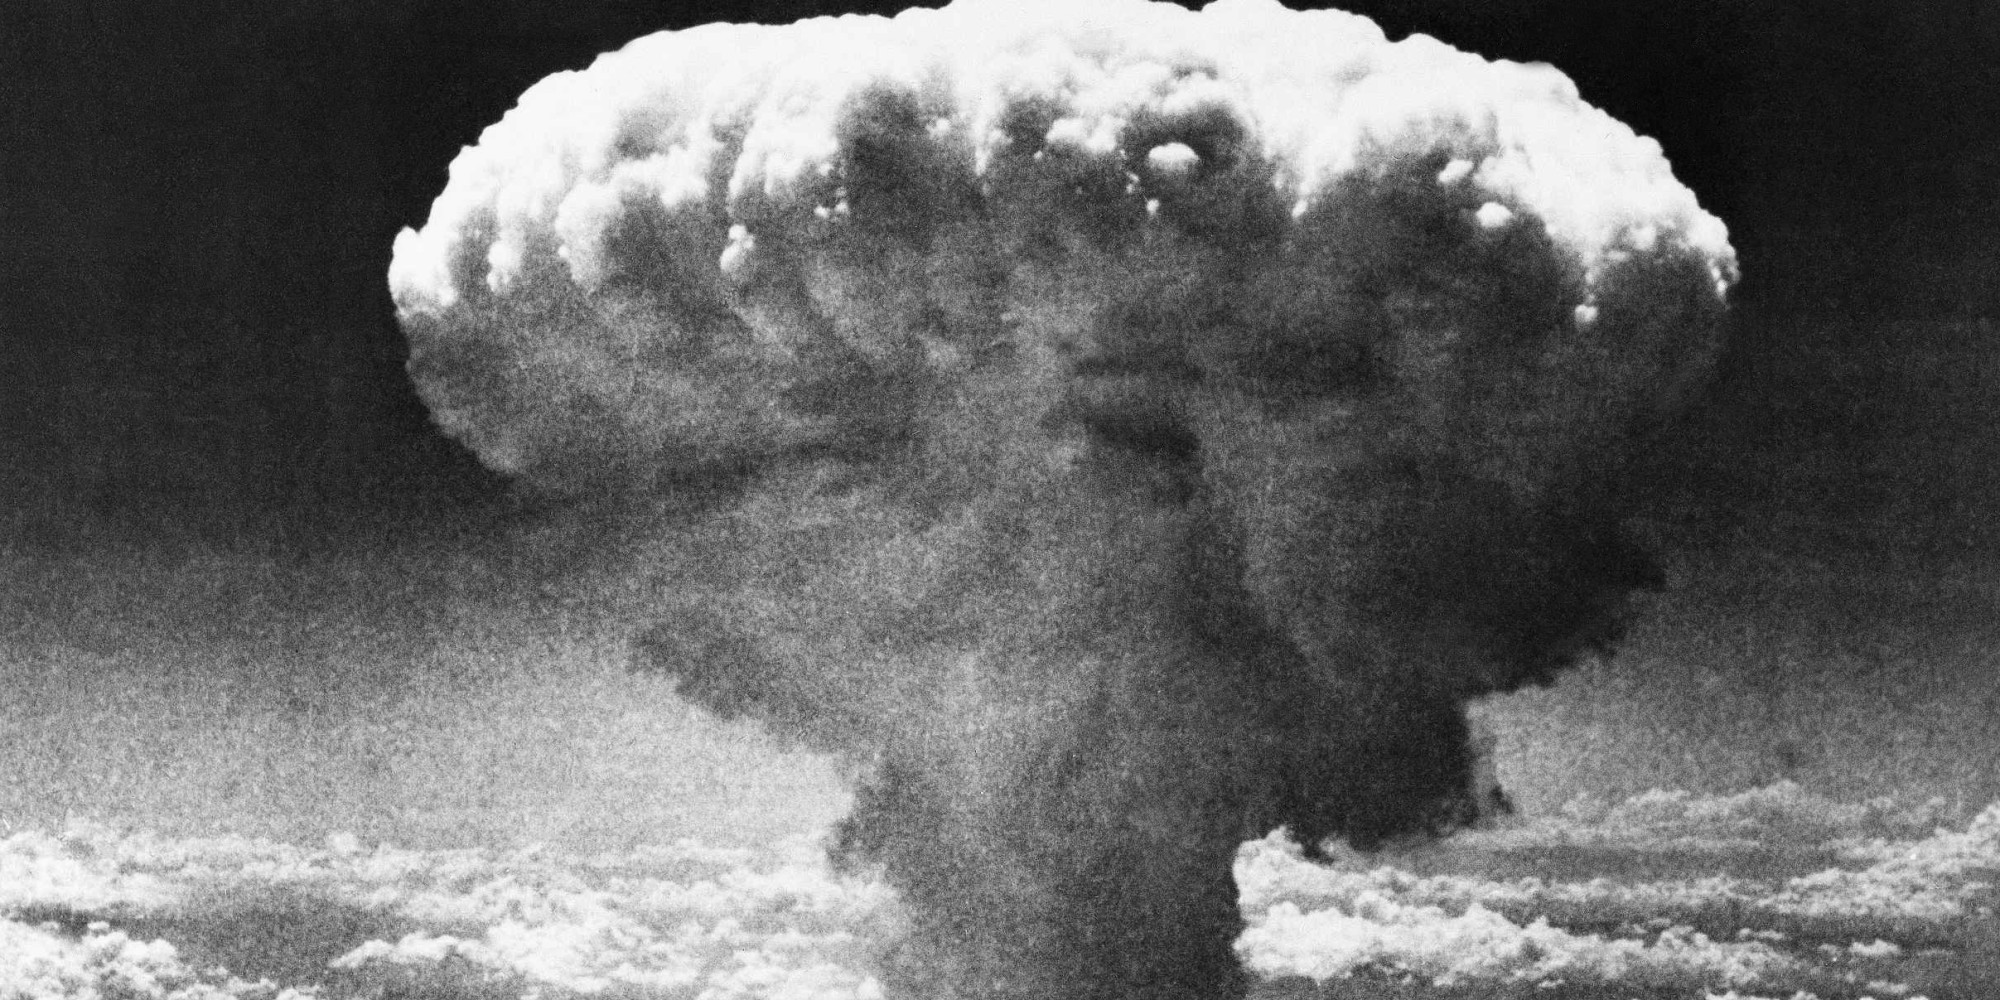 the objectivity in the atomic bombing of hiroshima The atomic bombing of the japanese city of hiroshima, quickly followed by the bombing of nagasaki (on august 6 and august 9, 1945 respectively) established that the greek myth of opening pandora's box had real-life consequences.